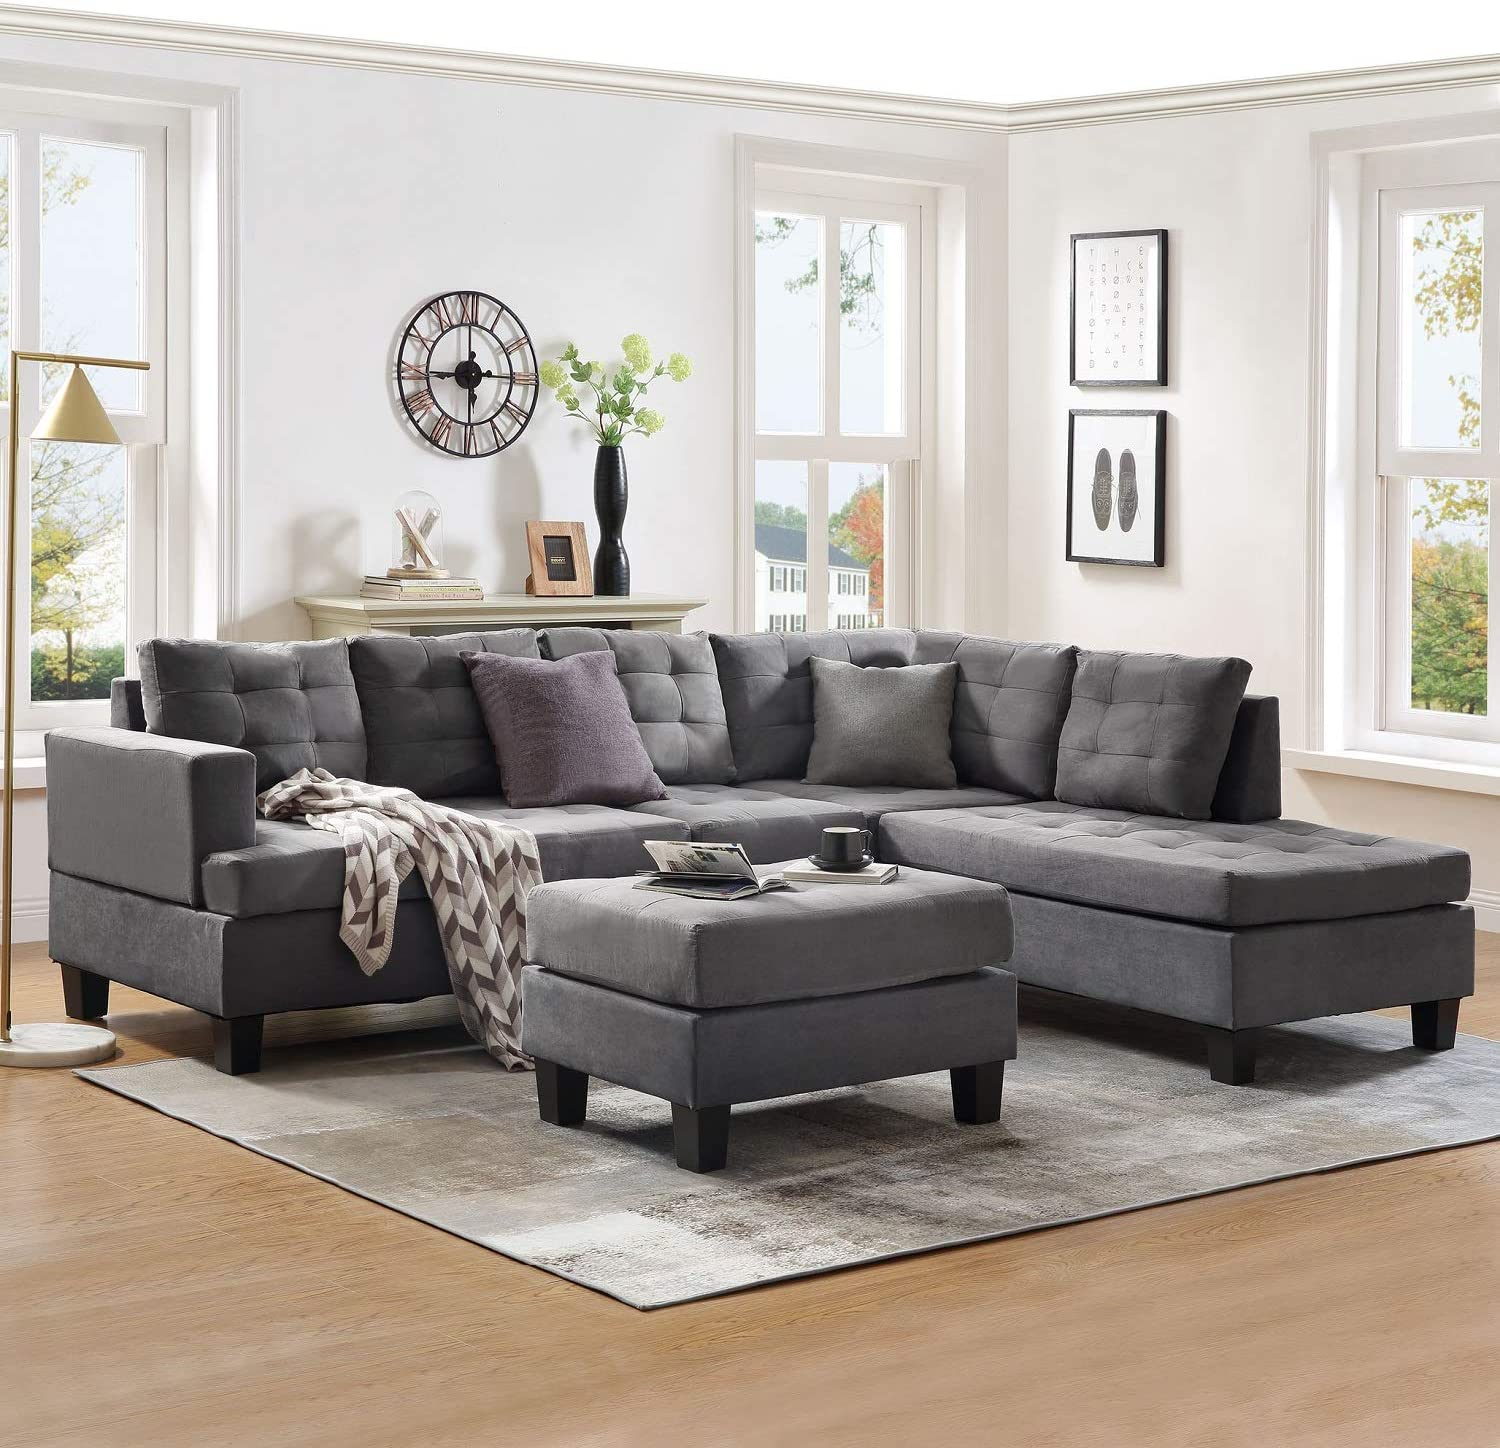 Sectional Sofa Sets 10-seat with Chaise Lounge and Storage Ottoman for  Living Room Furniture Sofas Sets (Gray)